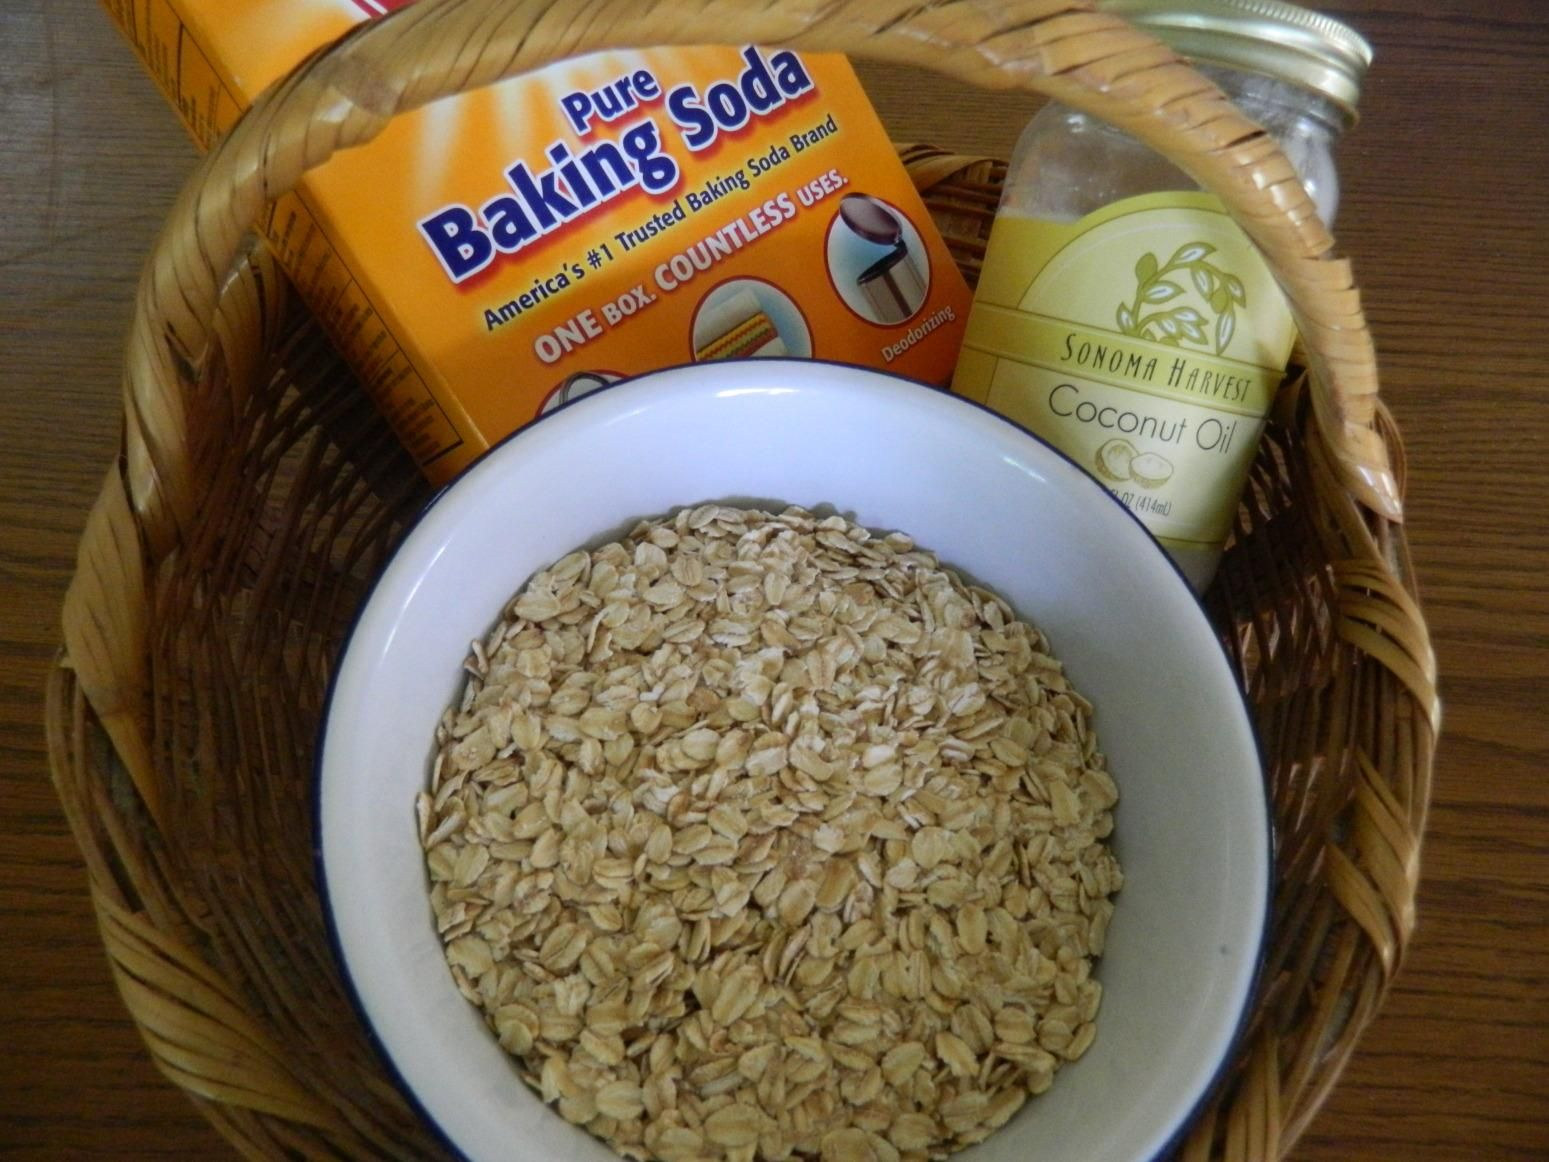 Itch Relief Oatmeal Bath Recipe Sodas, The oatmeal and